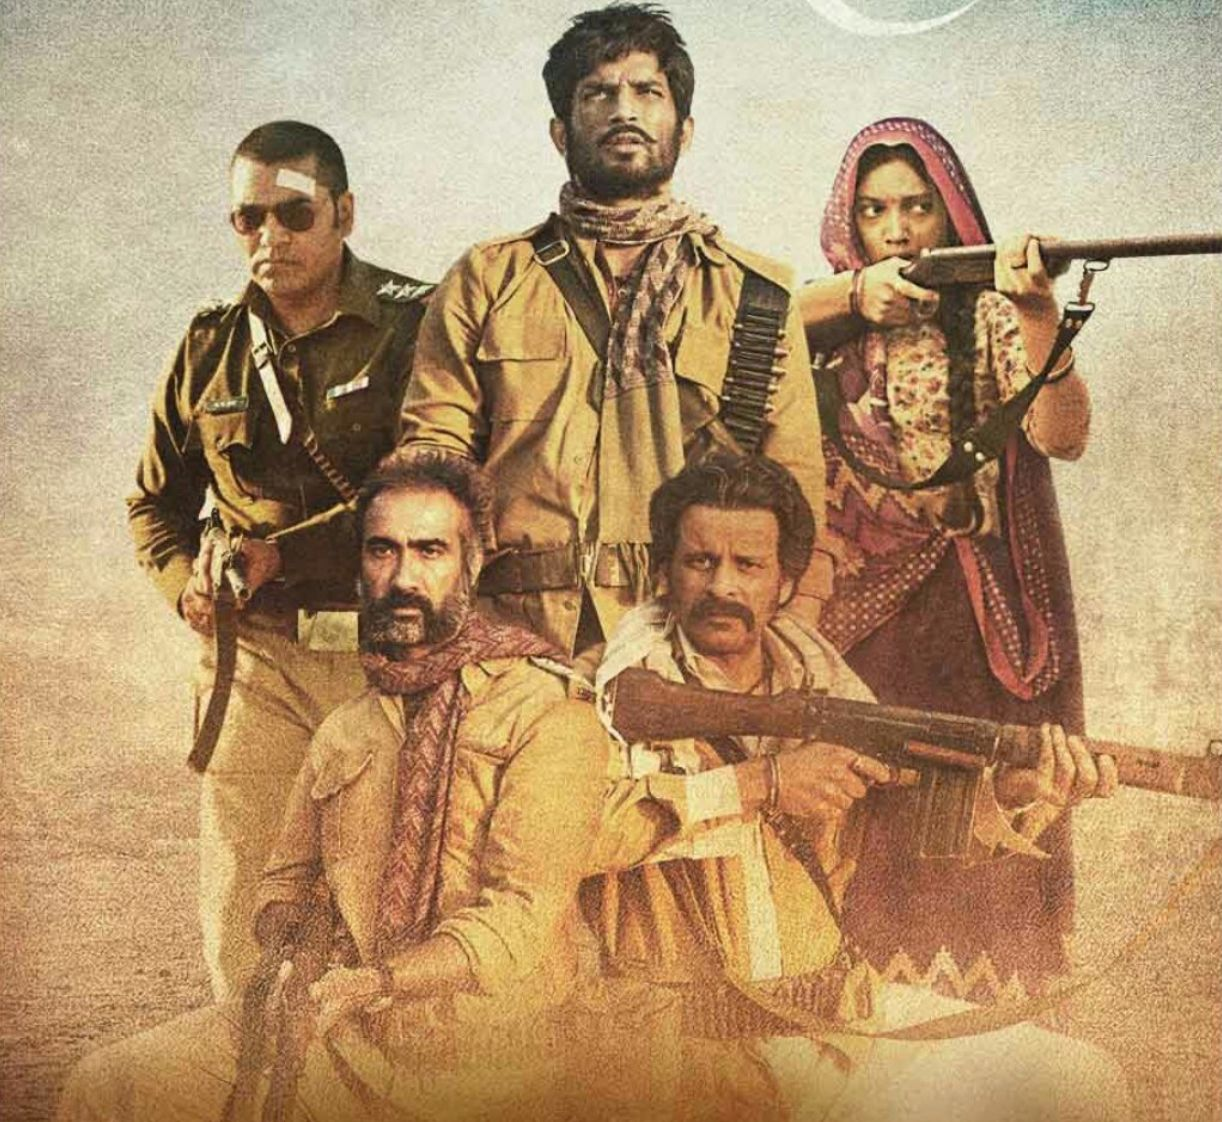 'Sonchiriya' Review: Sushant Singh Rajput, Bhumi Pednekar Are Outstanding In Film About Rebellion And